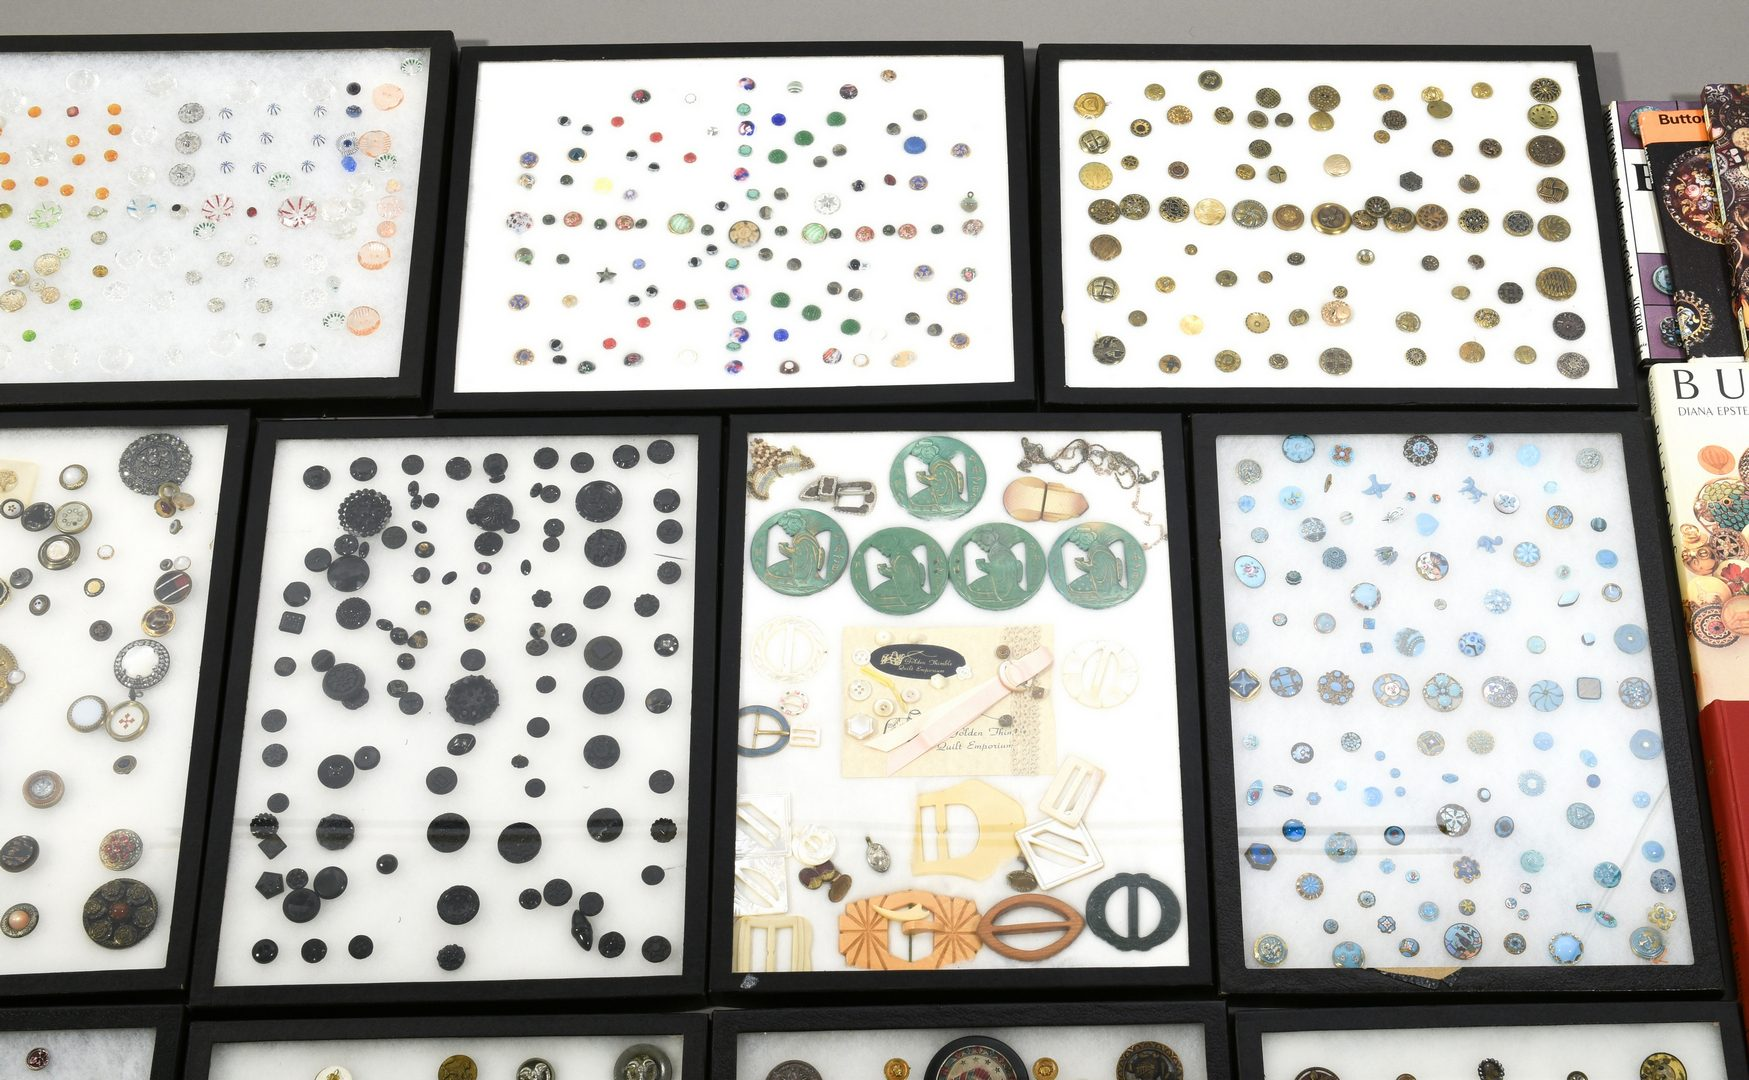 Lot 917: Extensive Button Collection w/ Books